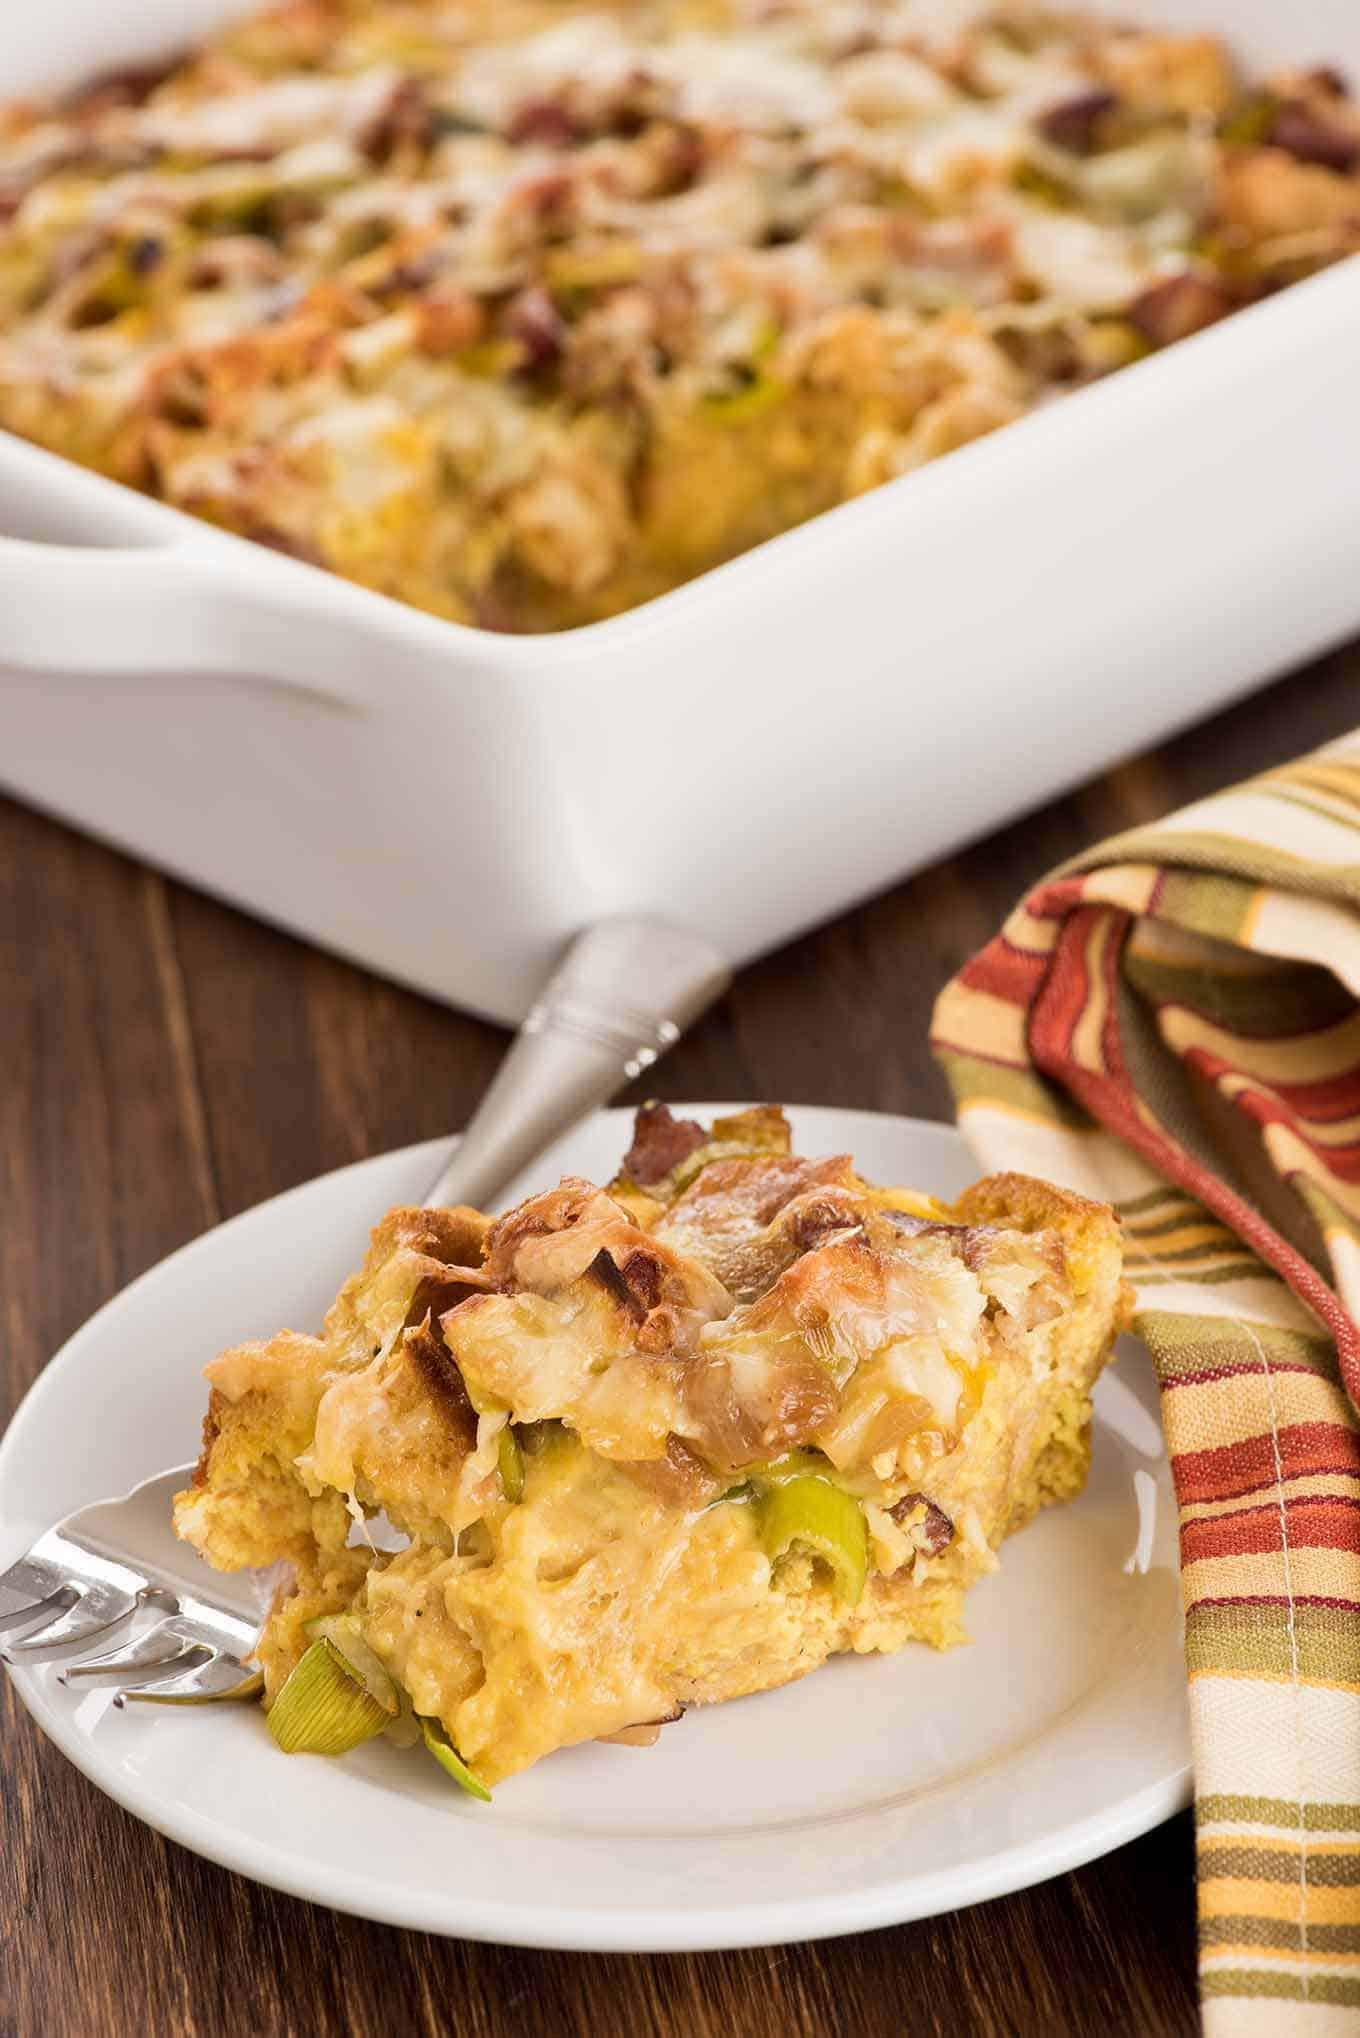 A serving of bacon, leek, and cheese strata on a plate with the casserole in the background.